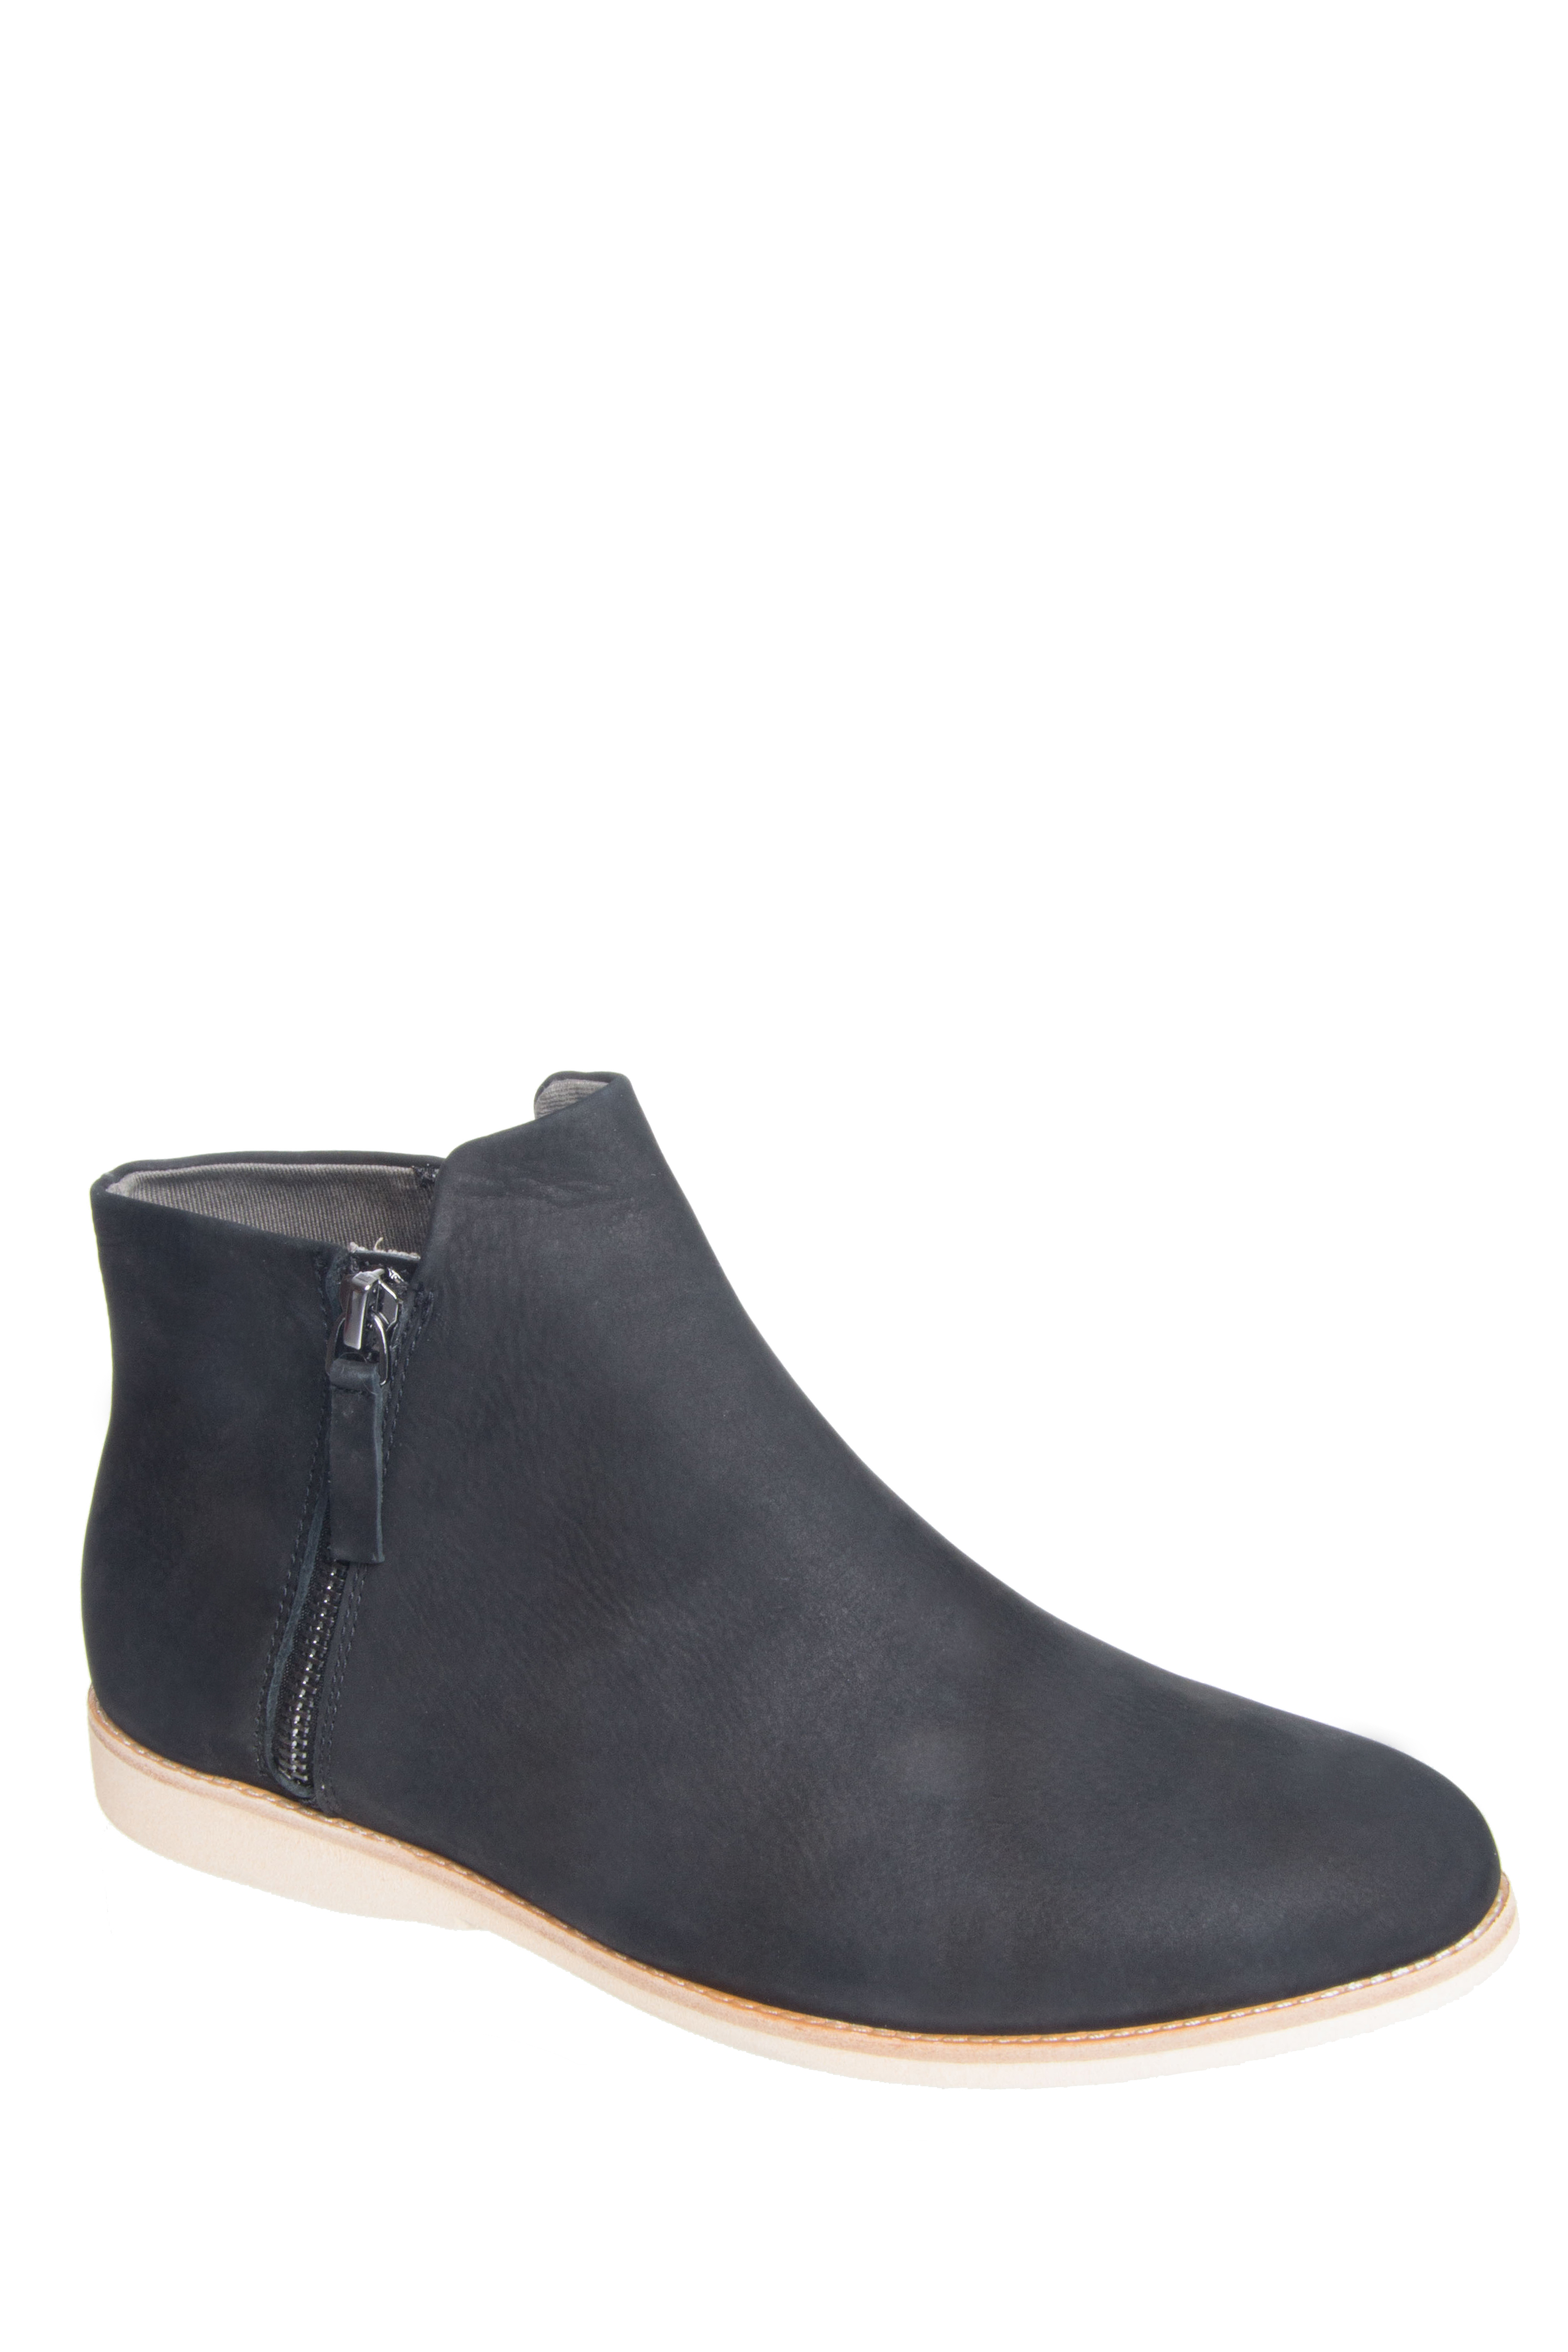 Rollie Nation Side Zip Low Heel Booties - Black Nubuck